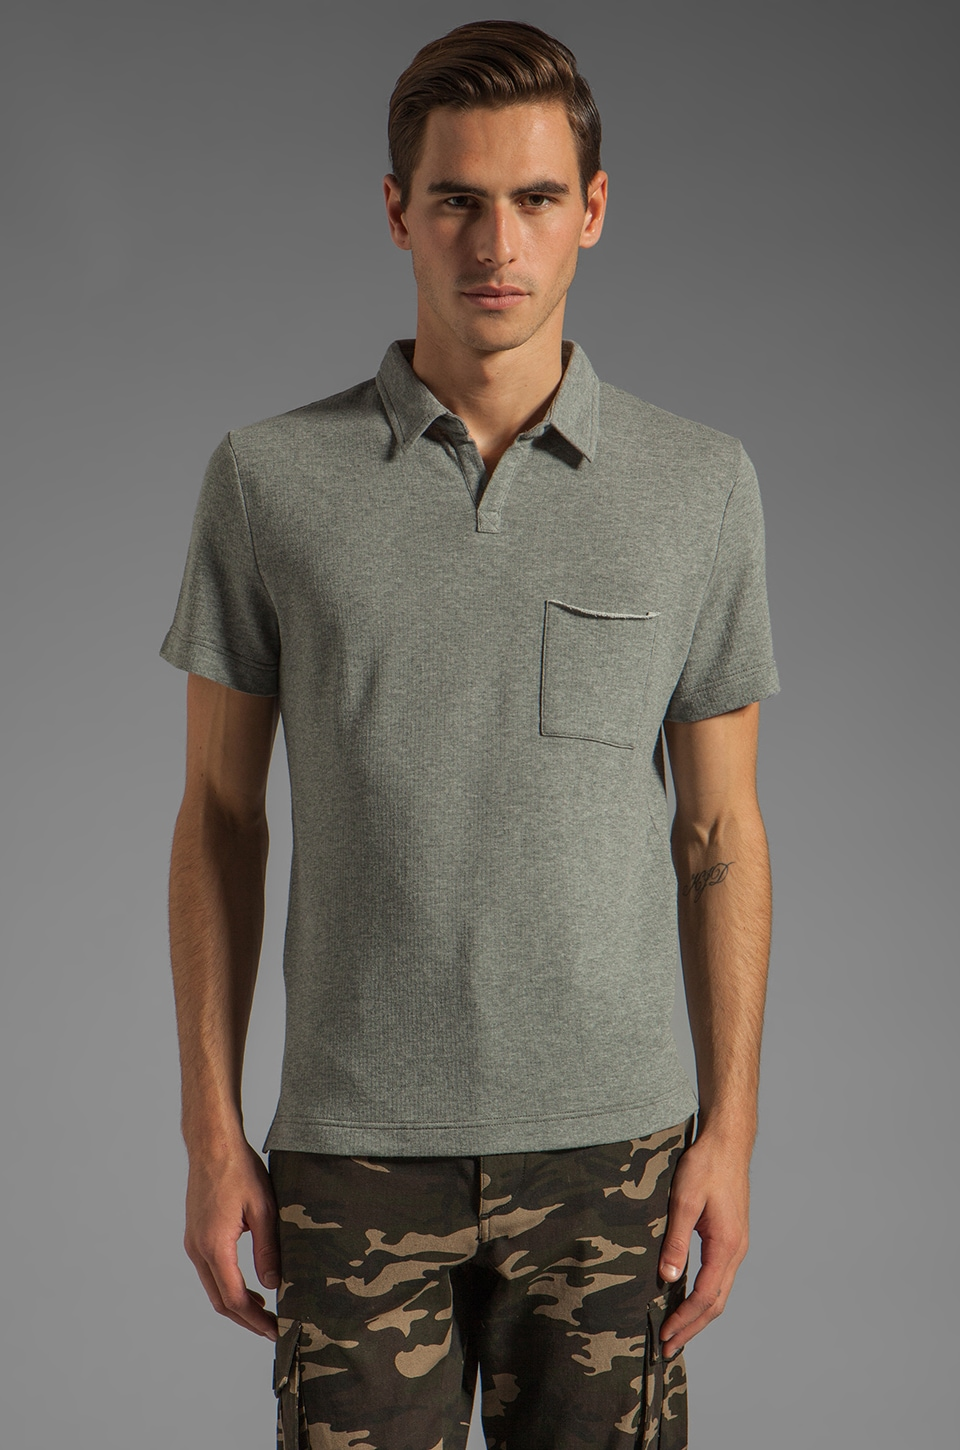 TOVAR Ede Tee in Heather Grey